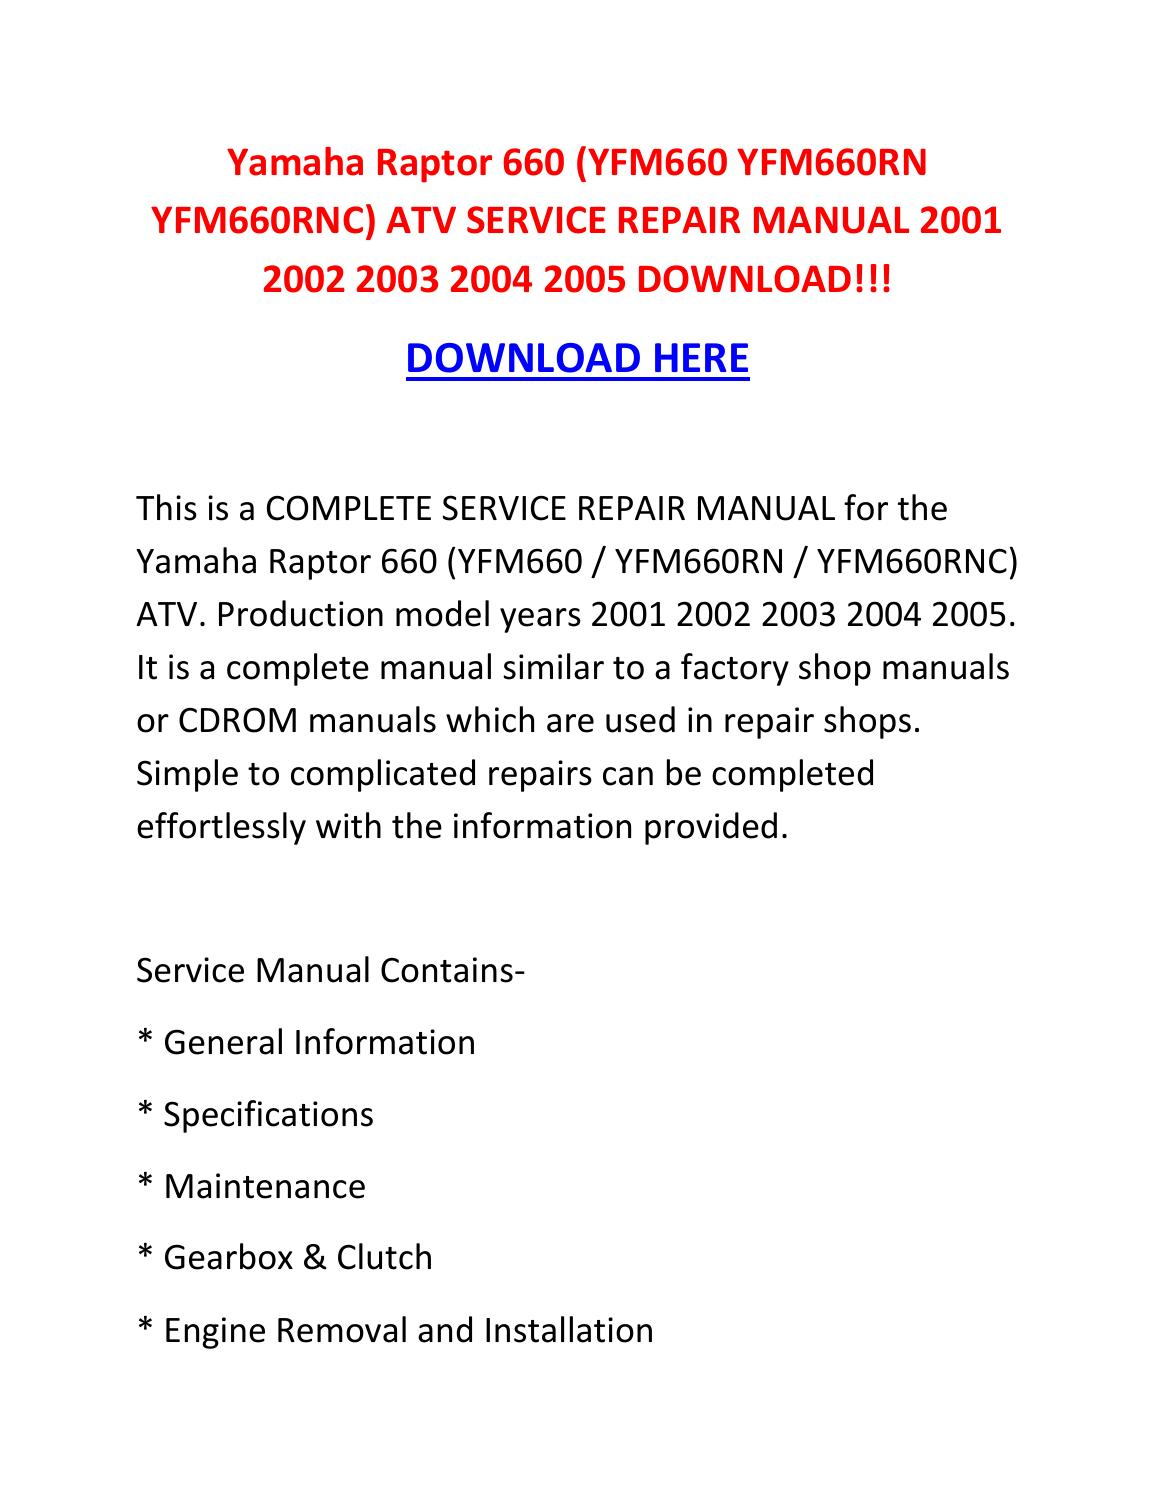 03 Raptor 660 Service Manual Citroen C5 Workshop Repair Dvd Wiring Diagrams 1st 2nd 2005 Yamaha Diagram Grizzly Radio Today Array Yfm660 Yfm660rn Yfm660rnc Atv Rh